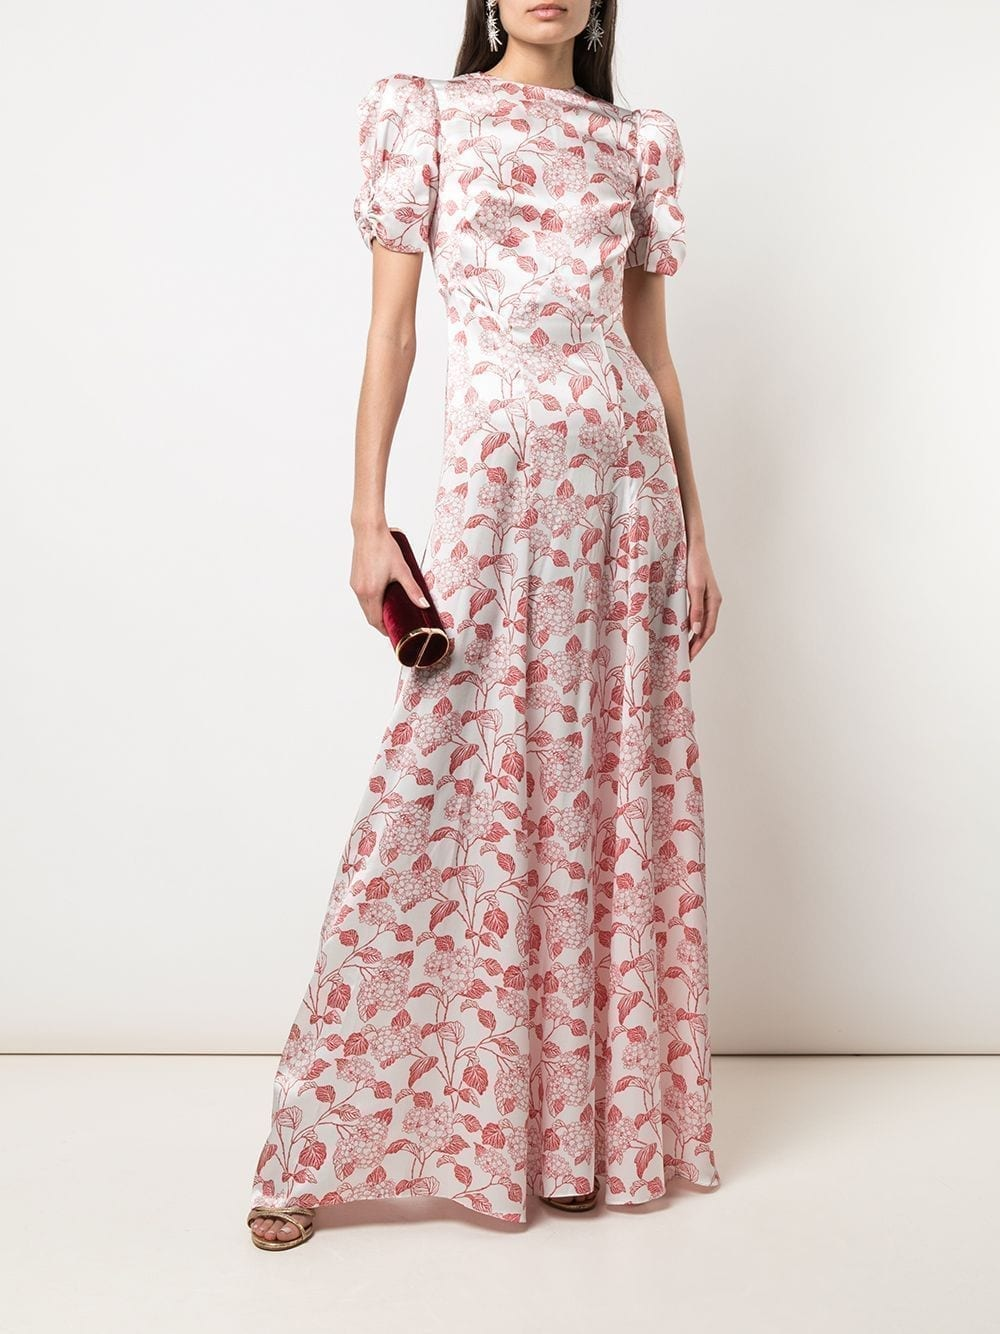 THE VAMPIRES WIFE Liberty Print Puff Sleeve Gown